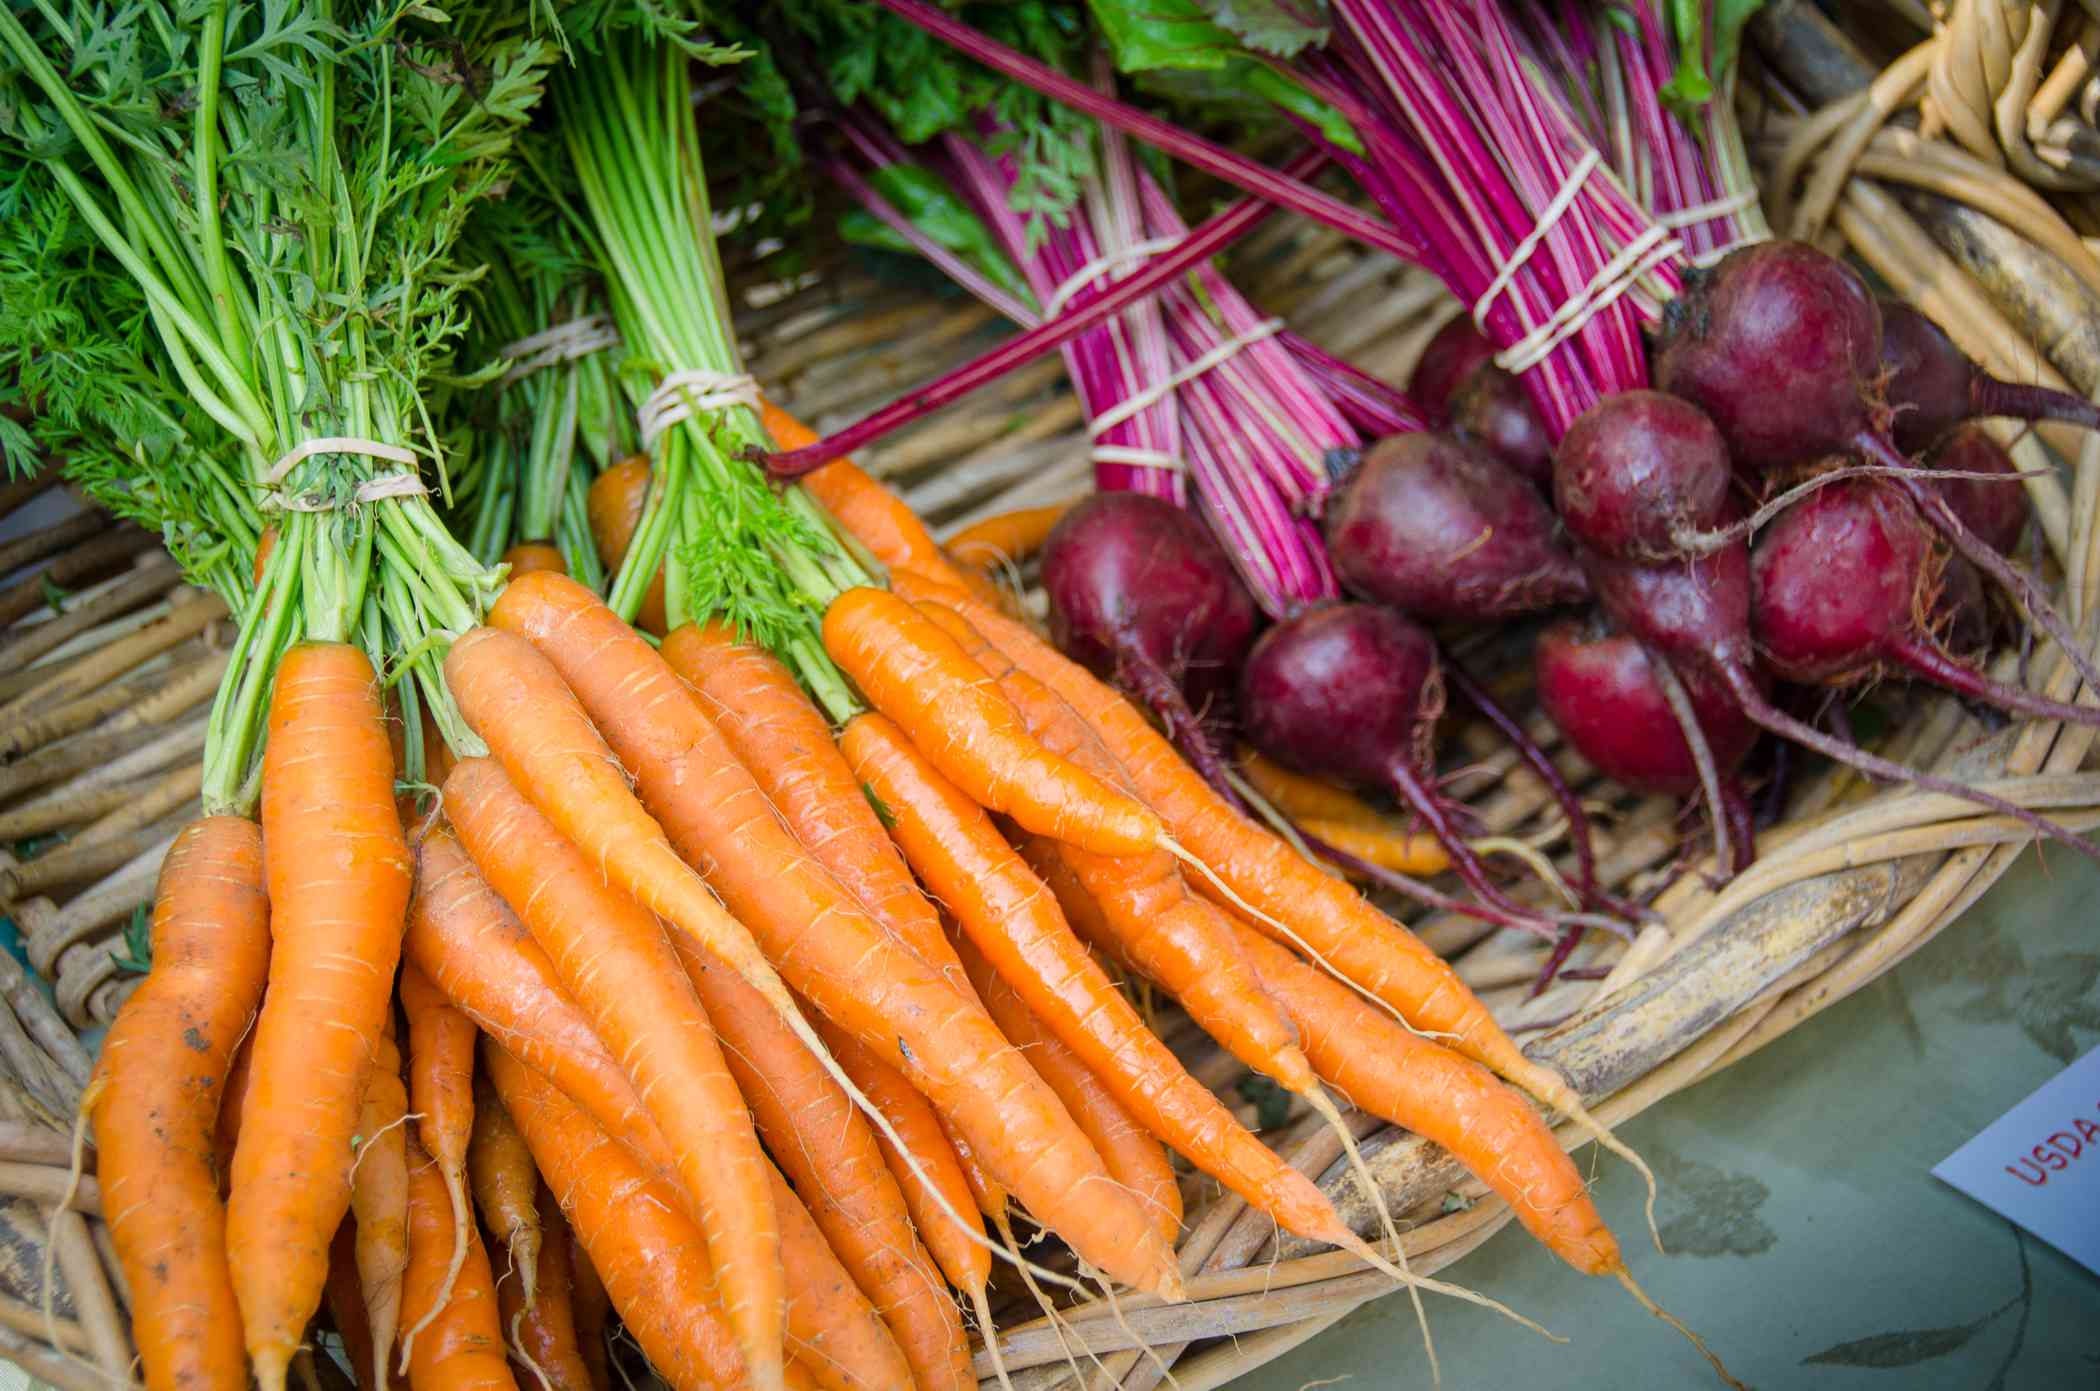 Carrots and beets on straw basket